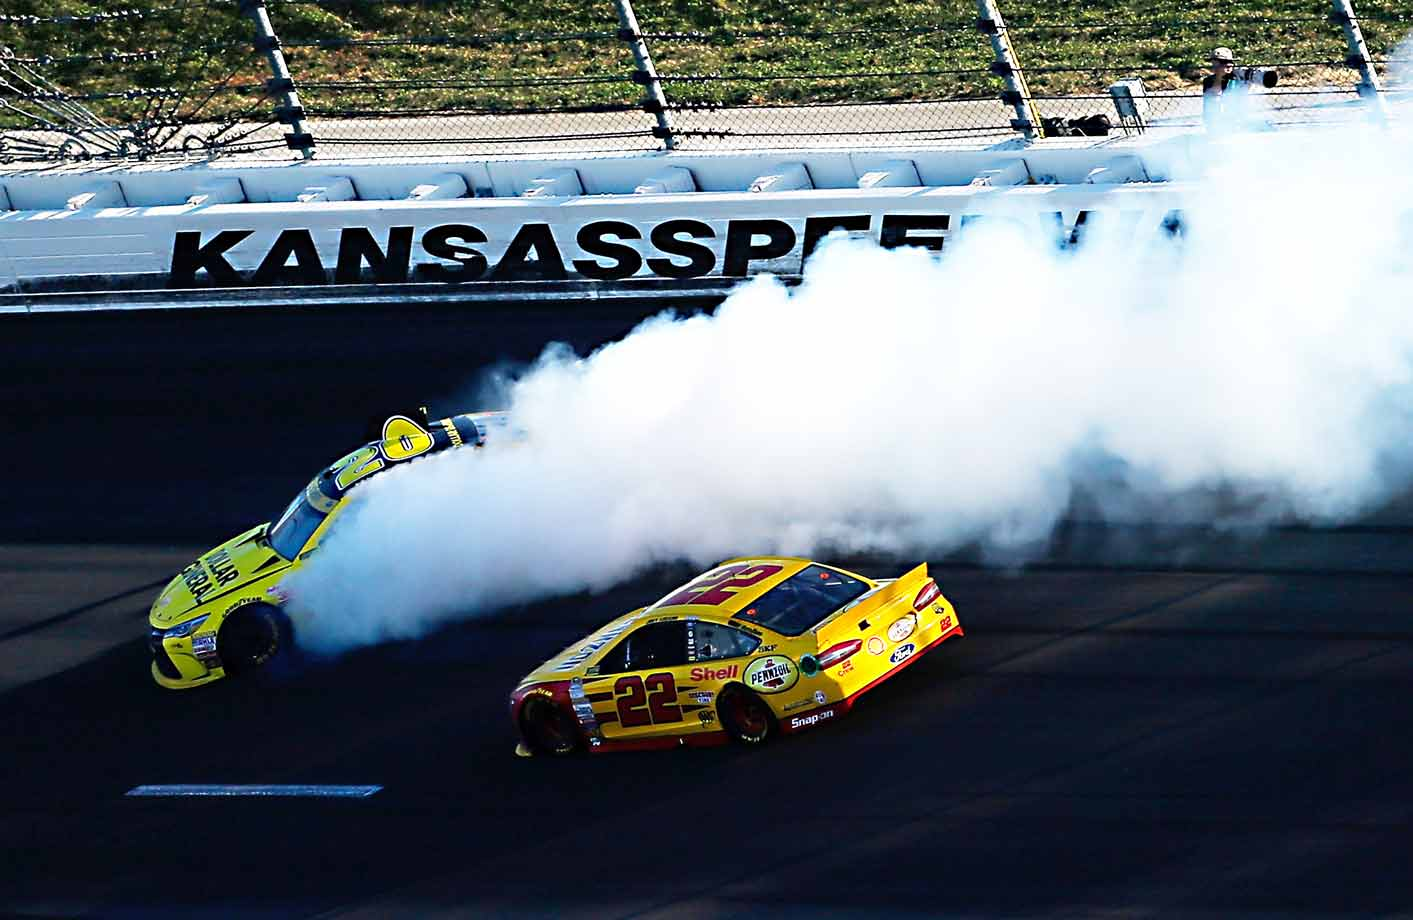 In a Chase race at Kansas, Logano (right) spun out Kenseth late on the way to claiming a checkered flag he arguably didn't need. (Logano had already earned a free pass into the next round; the wreck eliminated Kenseth from playoff contention.) Payback came at Martinsville. Nursing a wounded car 10 laps behind, Kenseth waited for Logano (then leading) to pull alongside, jabbed the nose of his car into right rear of Logano's racer and plowed him into the wall. Kenseth, who walked away OK, was hit with a two-race suspension. Logano's championship hopes were dashed.